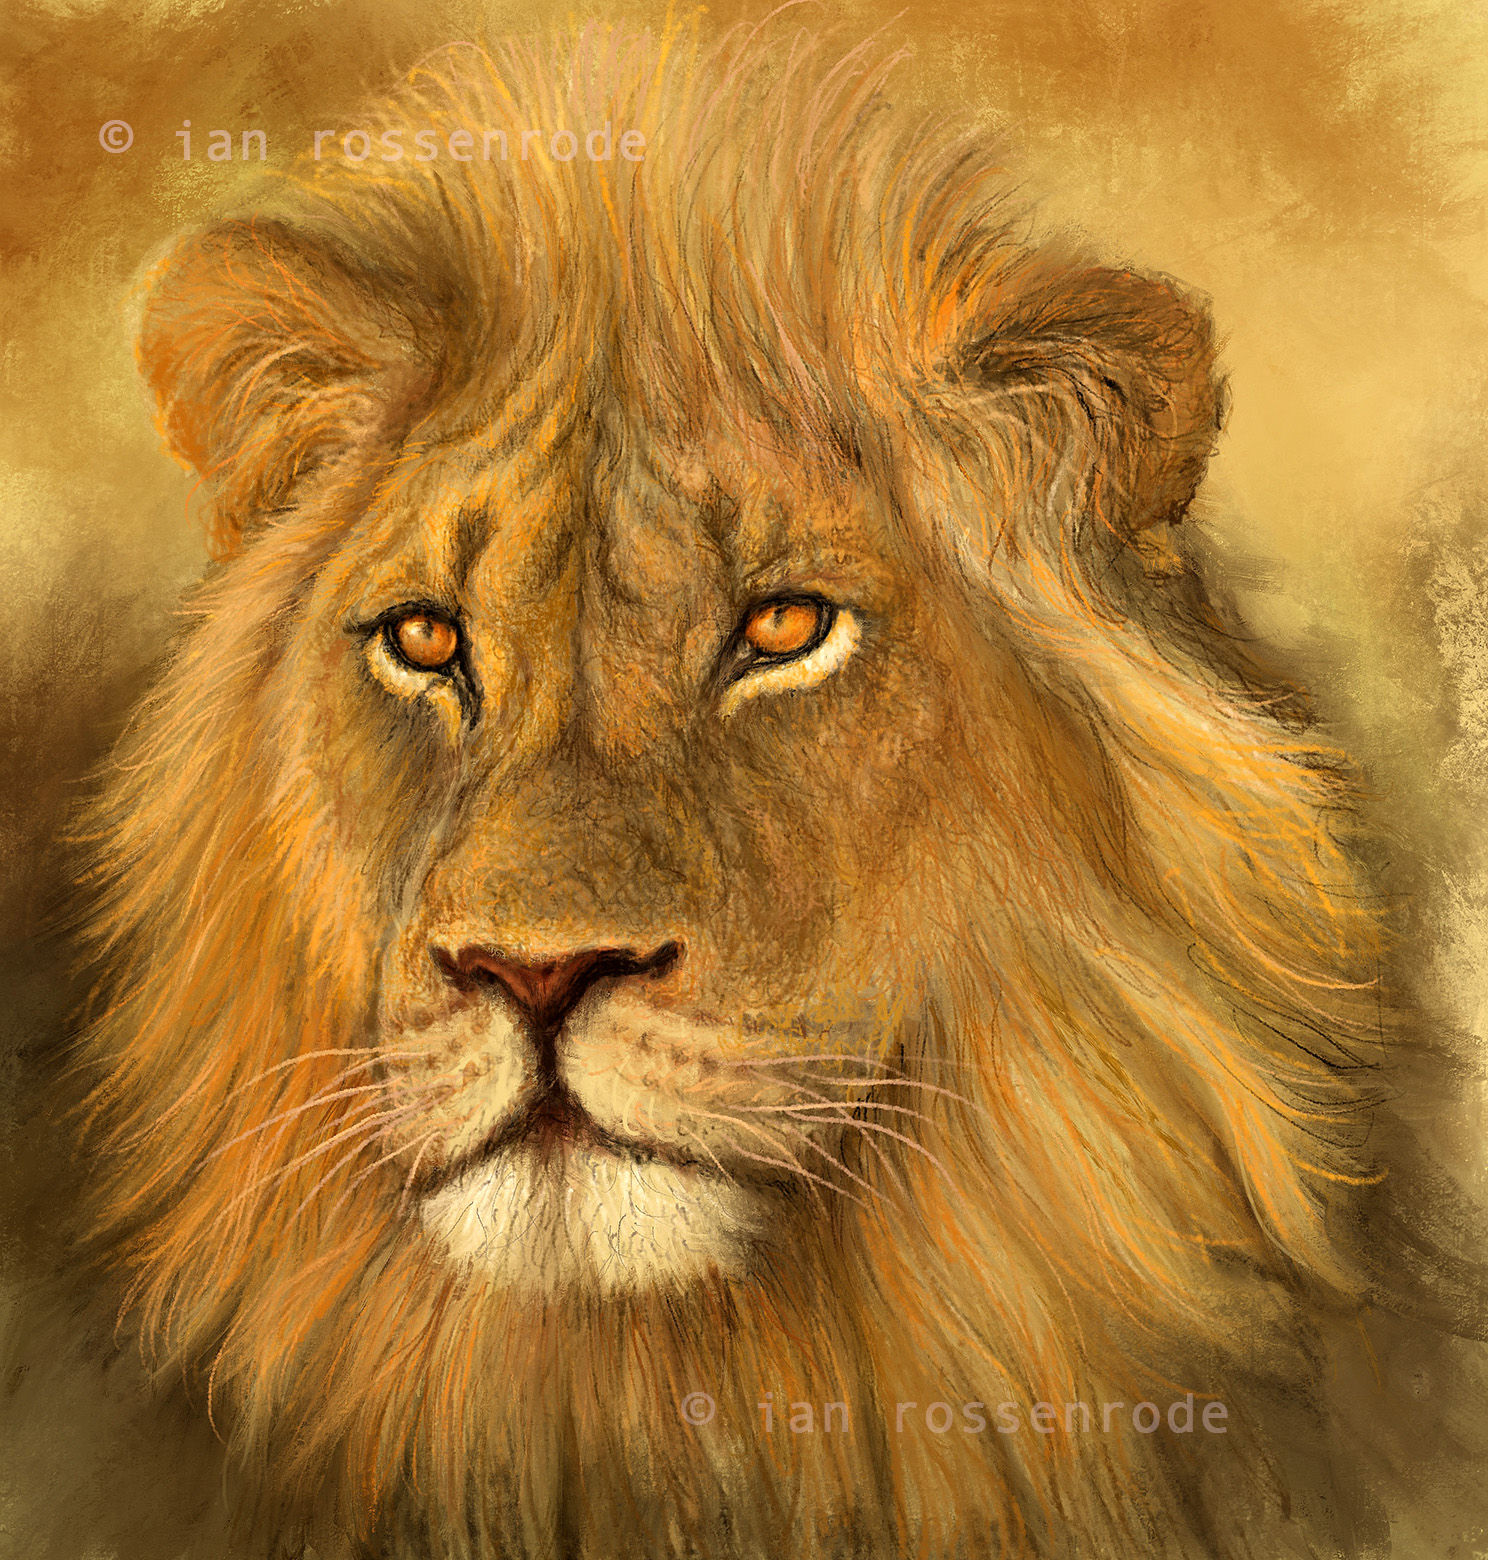 iPad Lion illustration